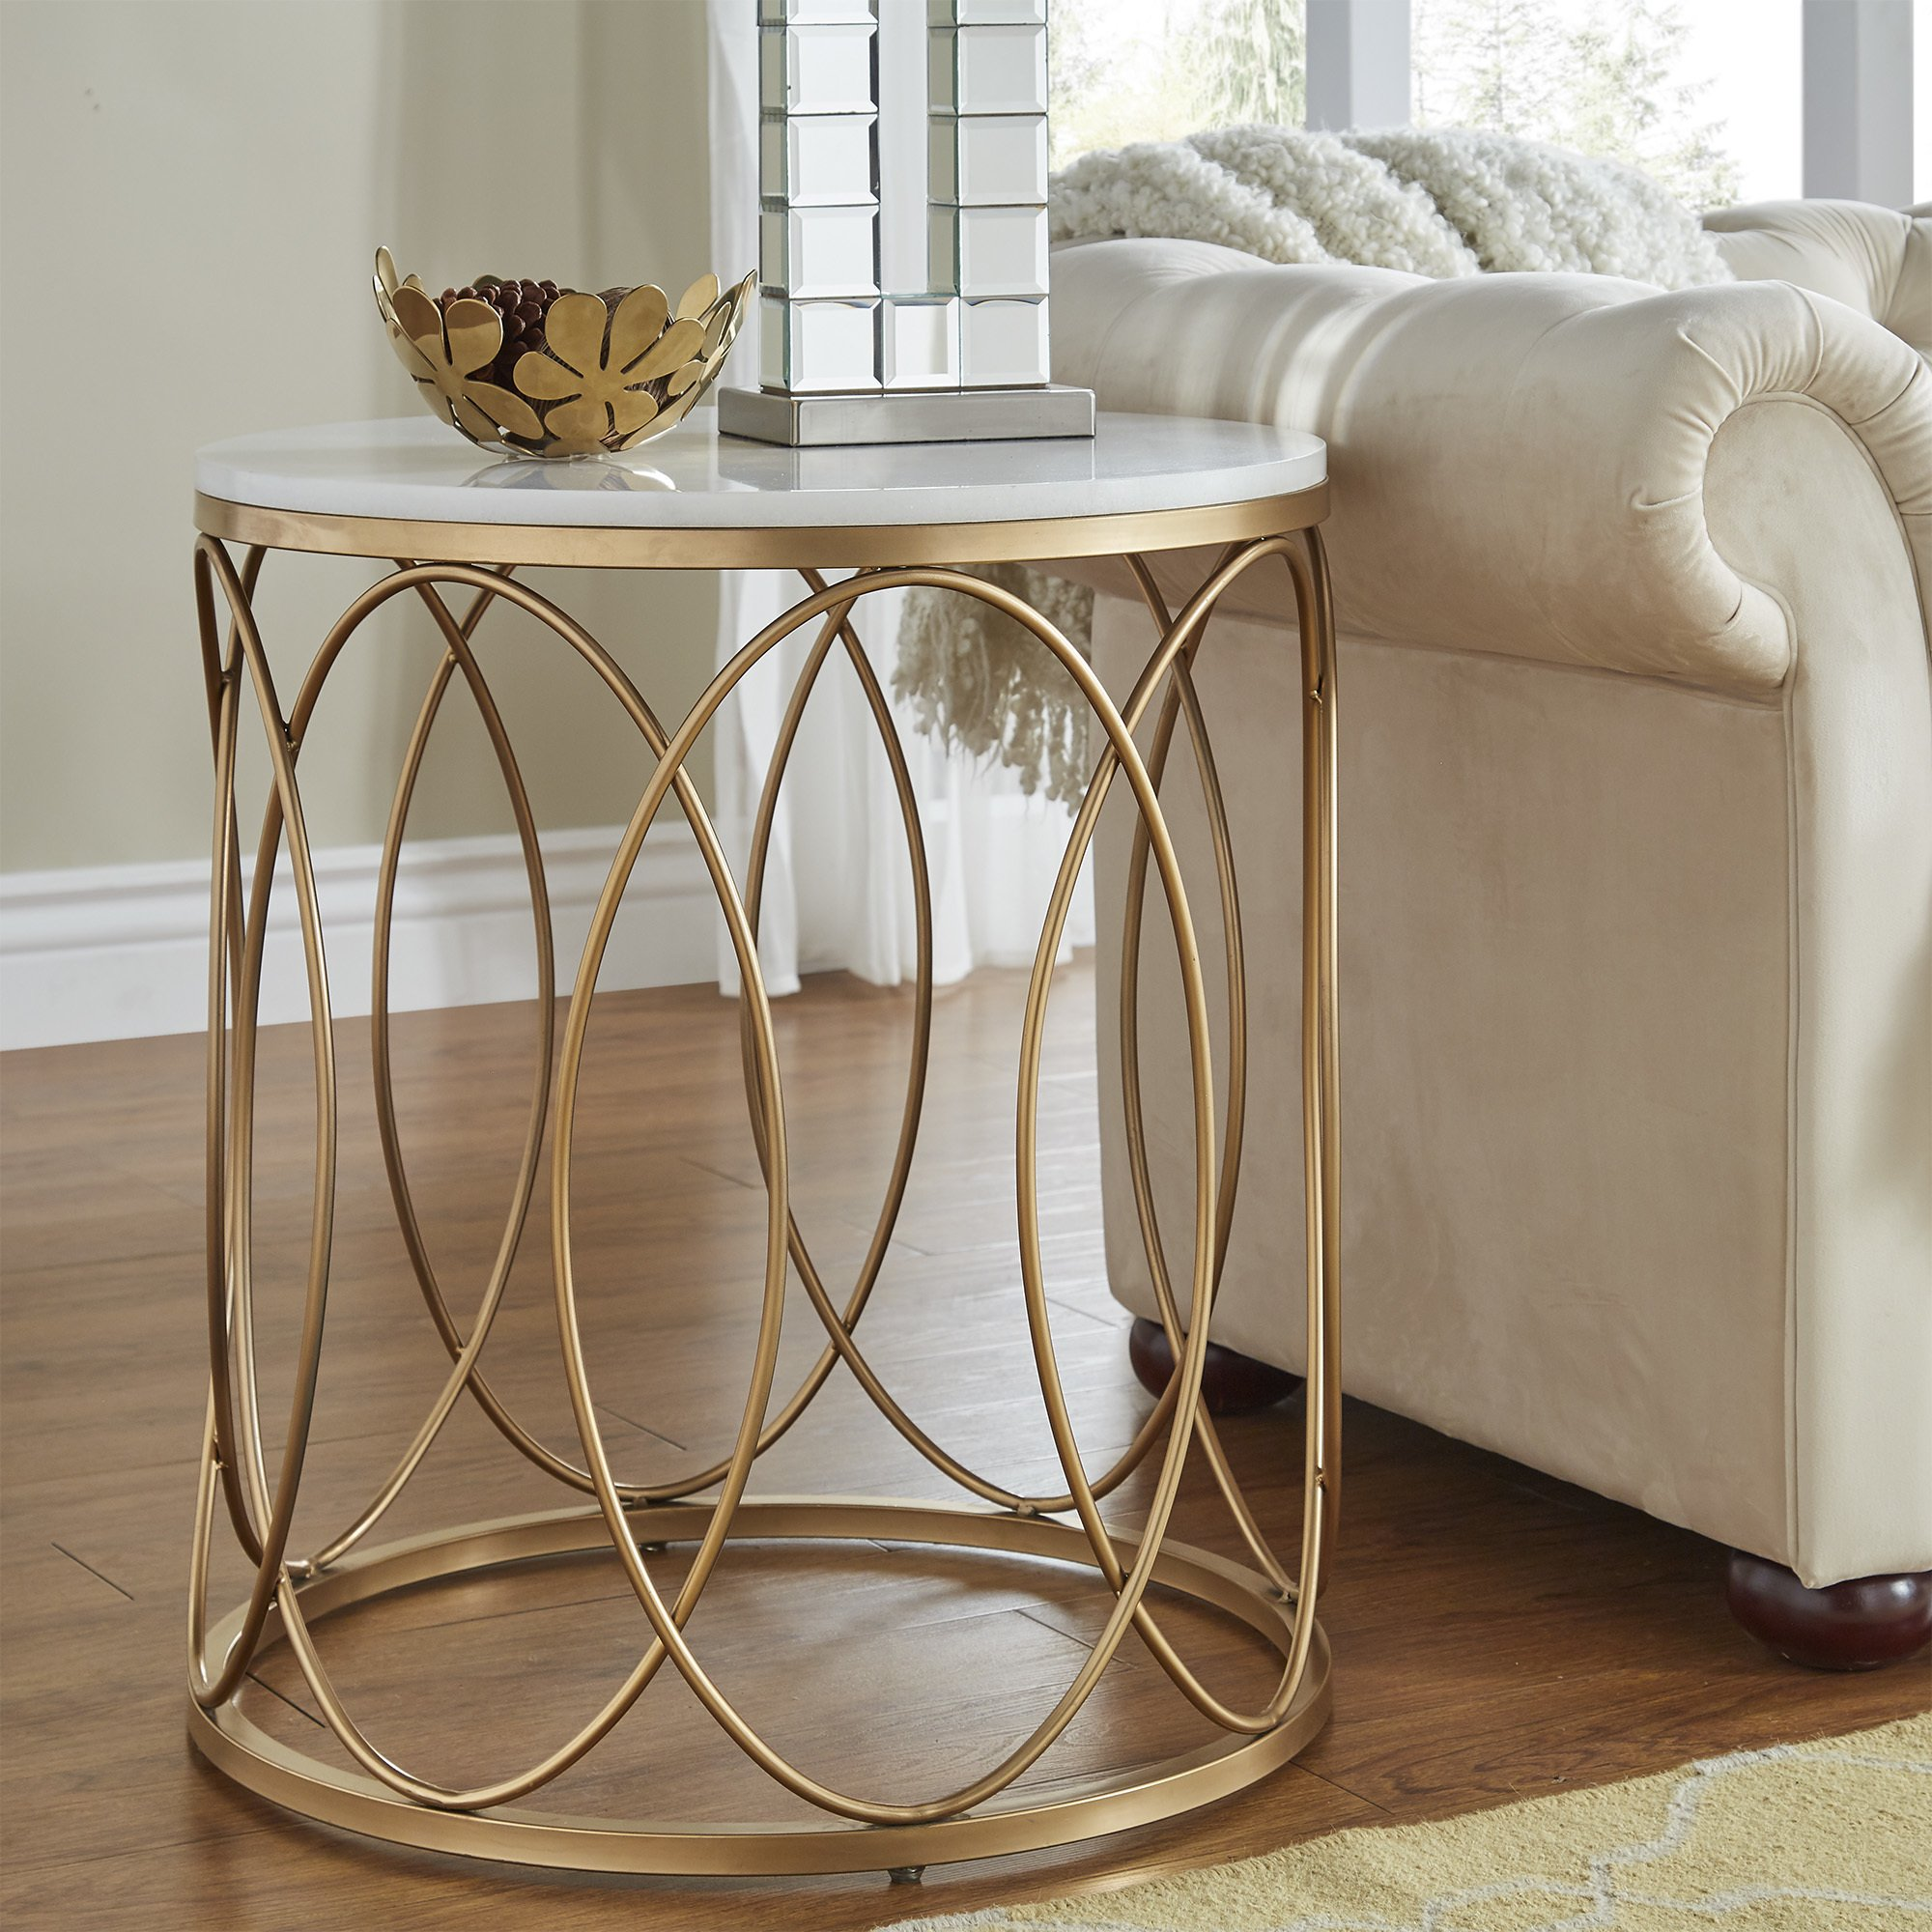 lynn round gold end table with marble top inspire bold accent free shipping today cube inch foyer funky coffee tables pine trestle small pottery barn glass dining bar height